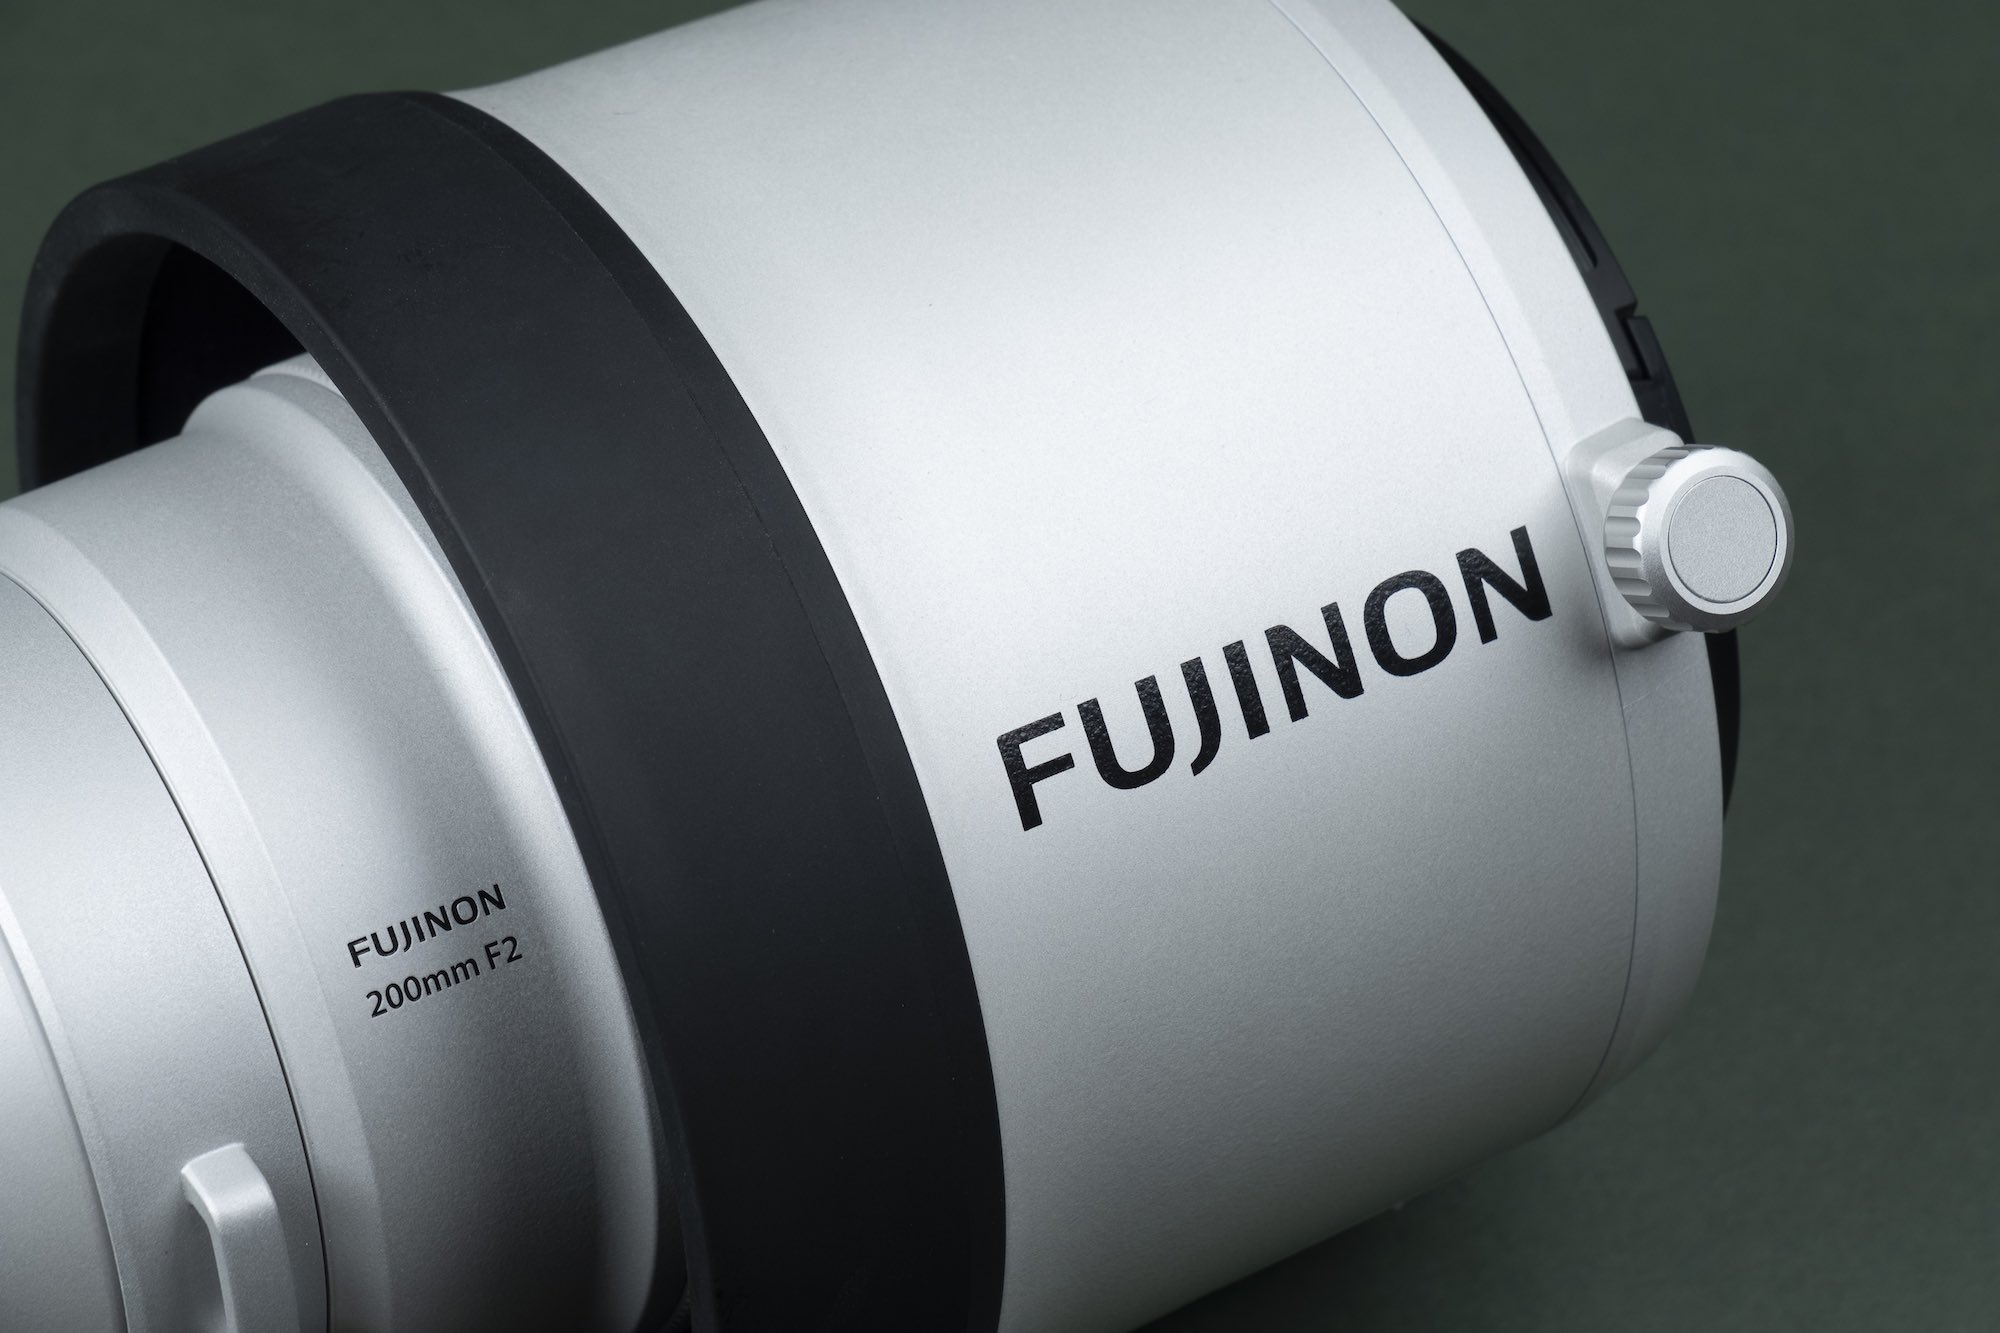 FUJINON 200mm F2 Lens FUJIFILMproduct photography services singapore studio photographer asia ecommerce technology tech camera digital 2